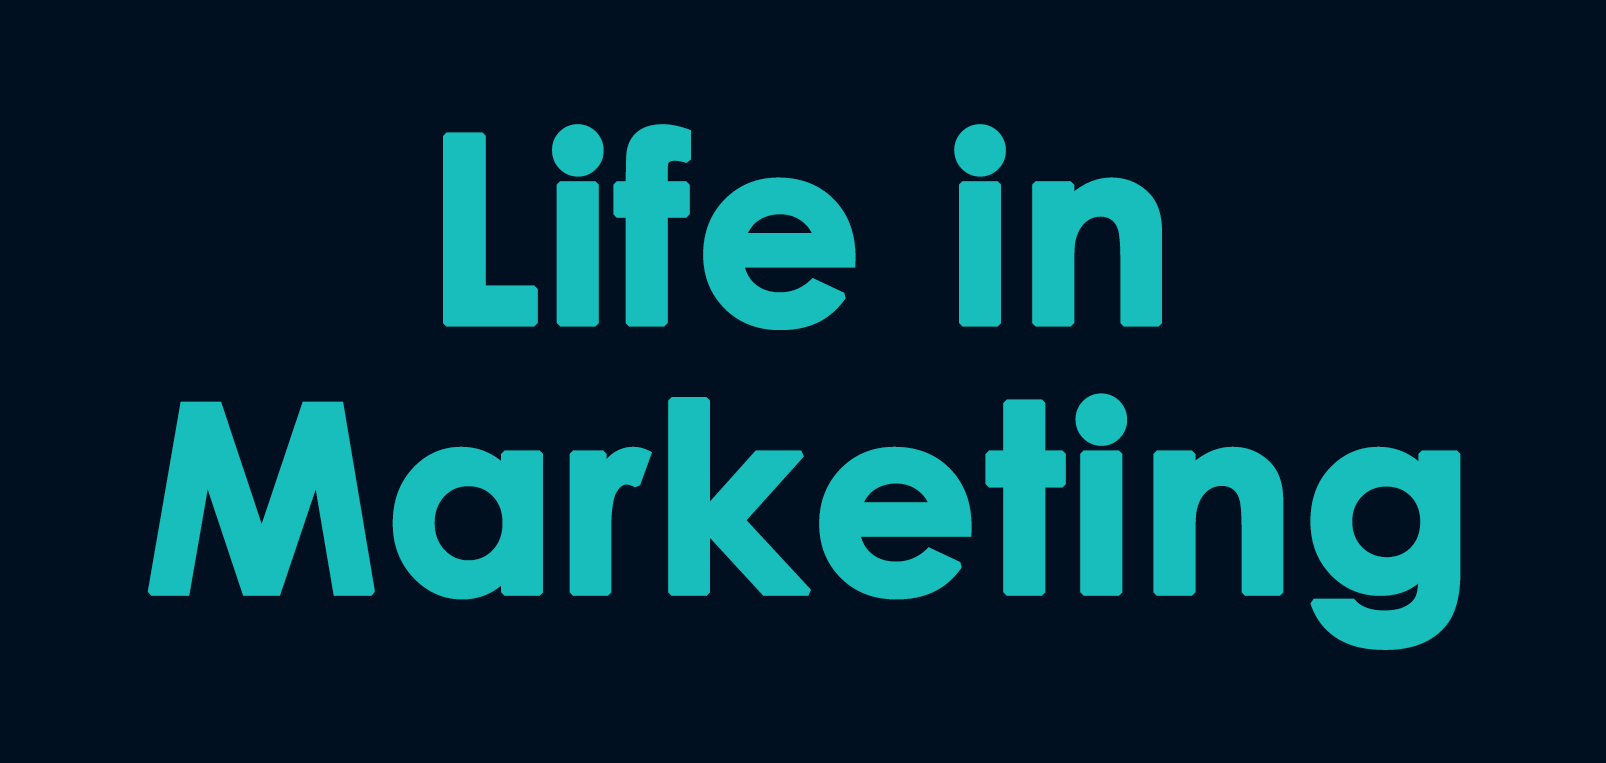 Life in Marketing image